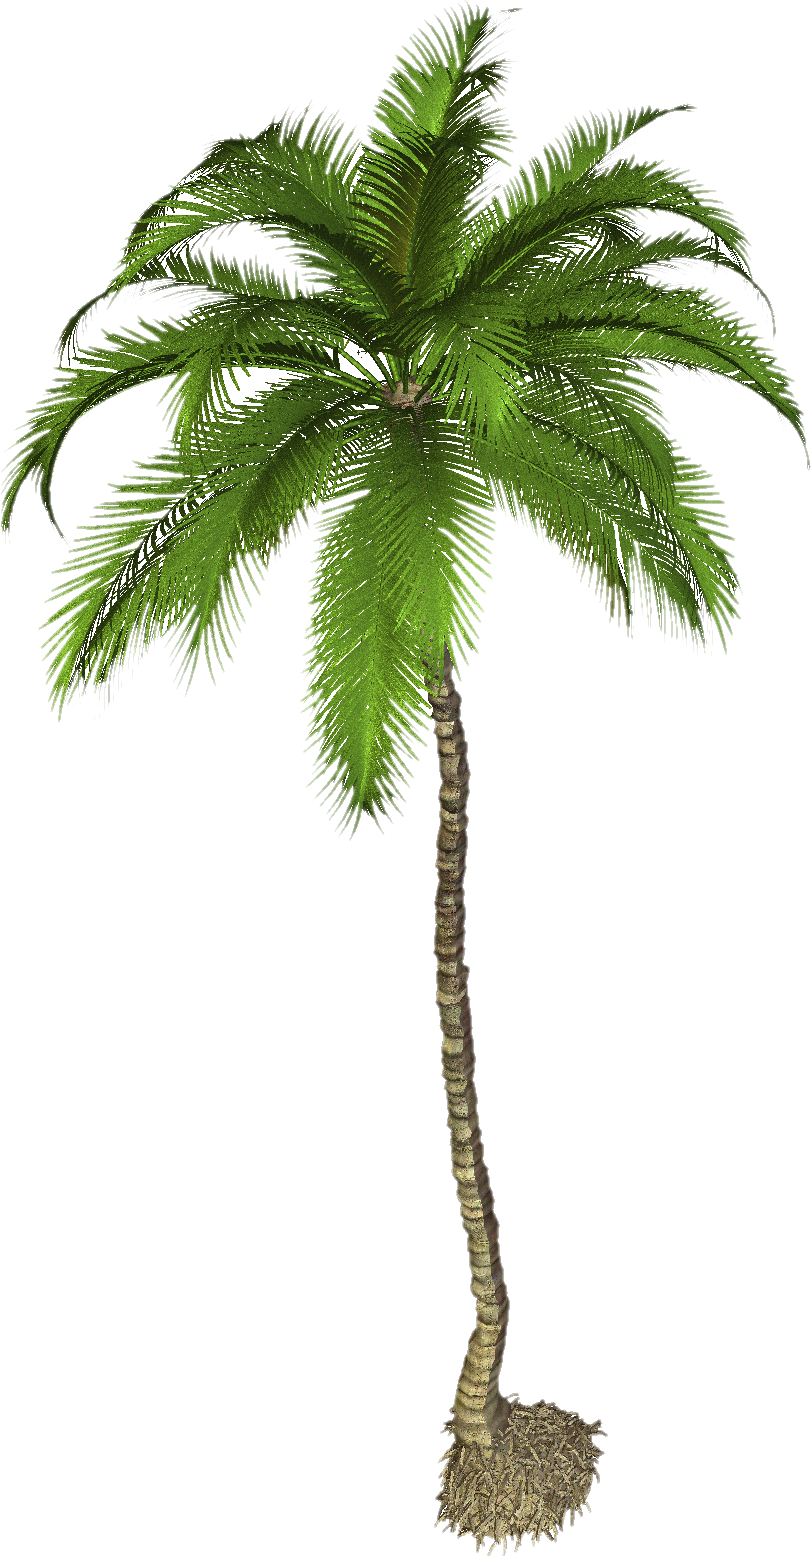 Palm tree background clipart vector black and white library Free Images Clipart Best Palm Tree #31892 - Free Icons and PNG ... vector black and white library